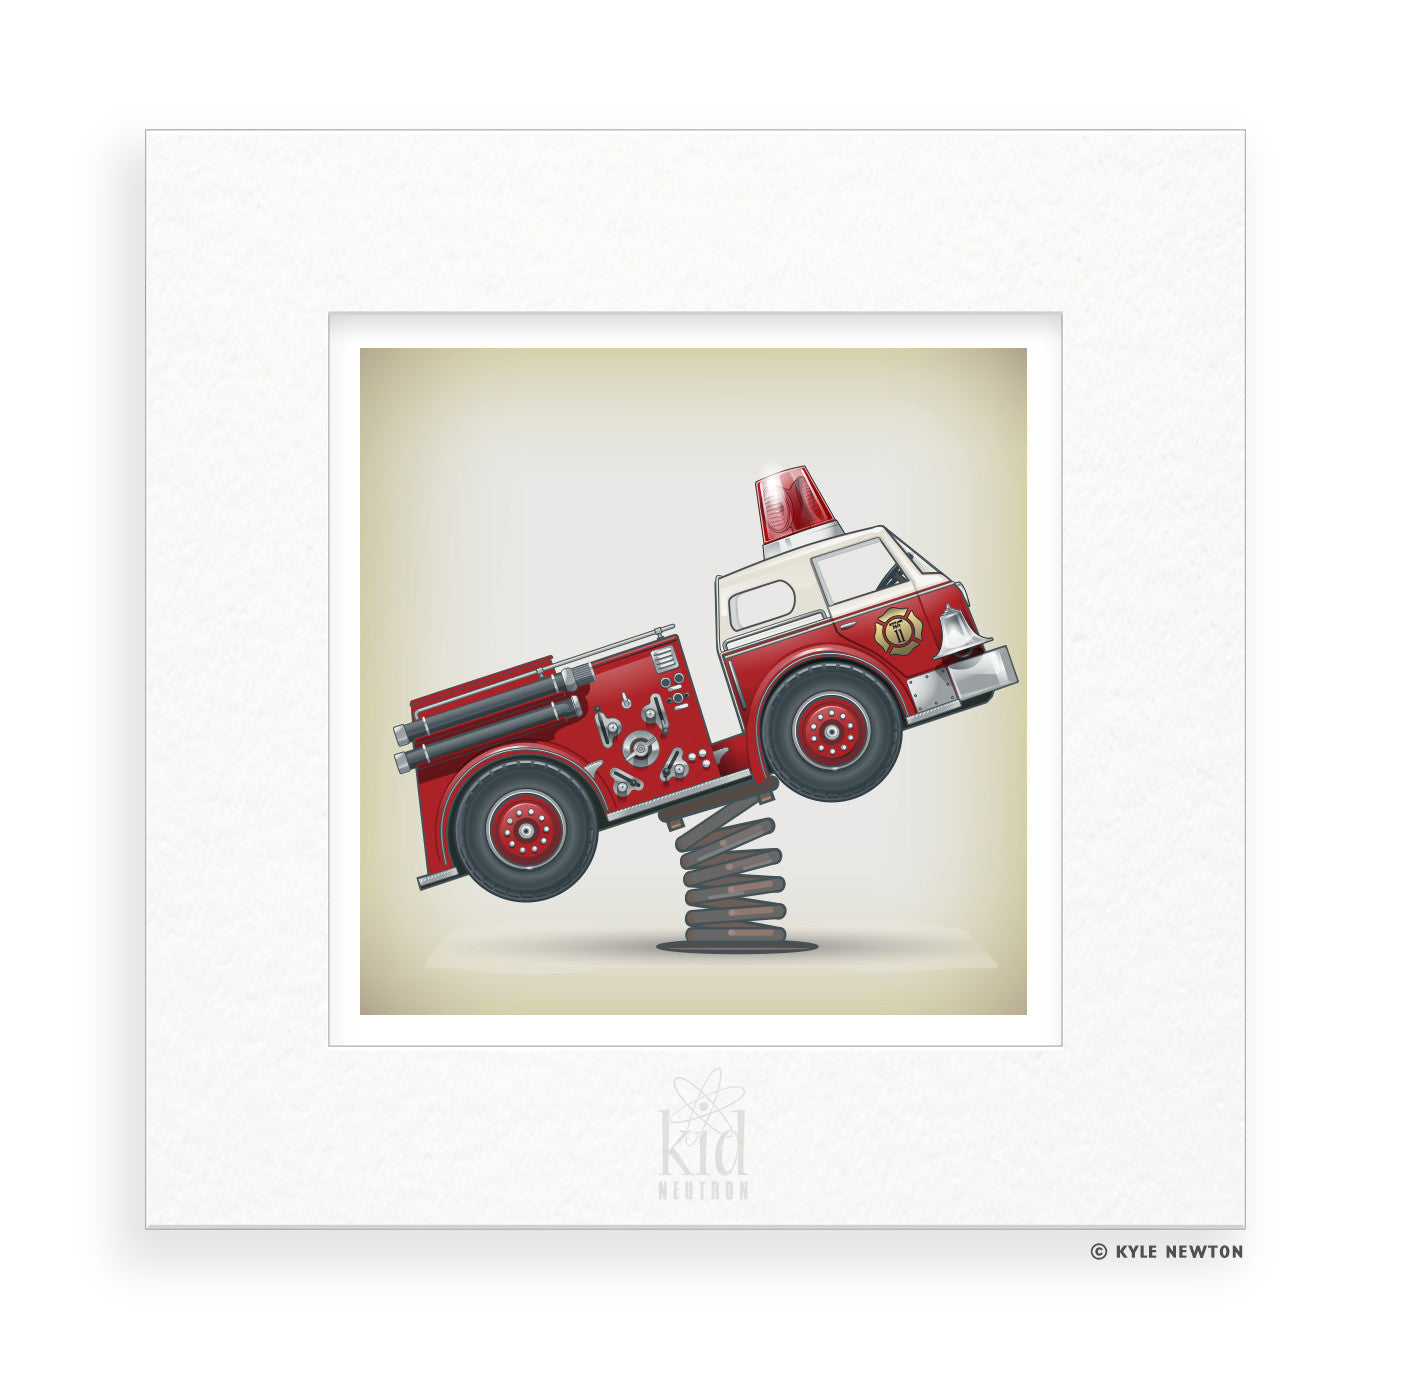 Fire Chief : Personalized & Matted Art Print